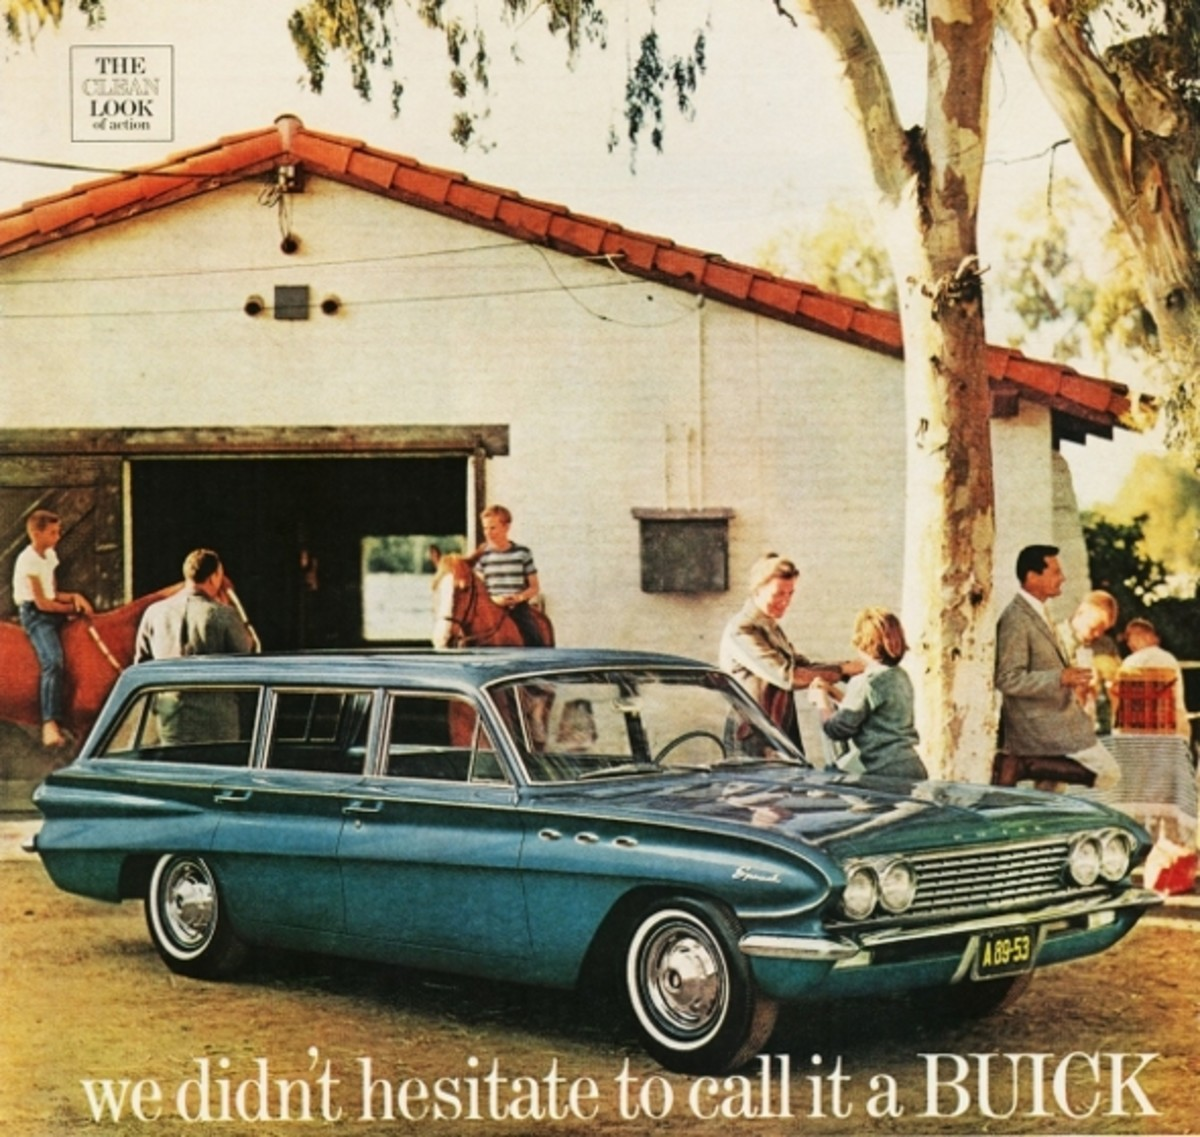 1961 Buick Special Station Wagon Ad